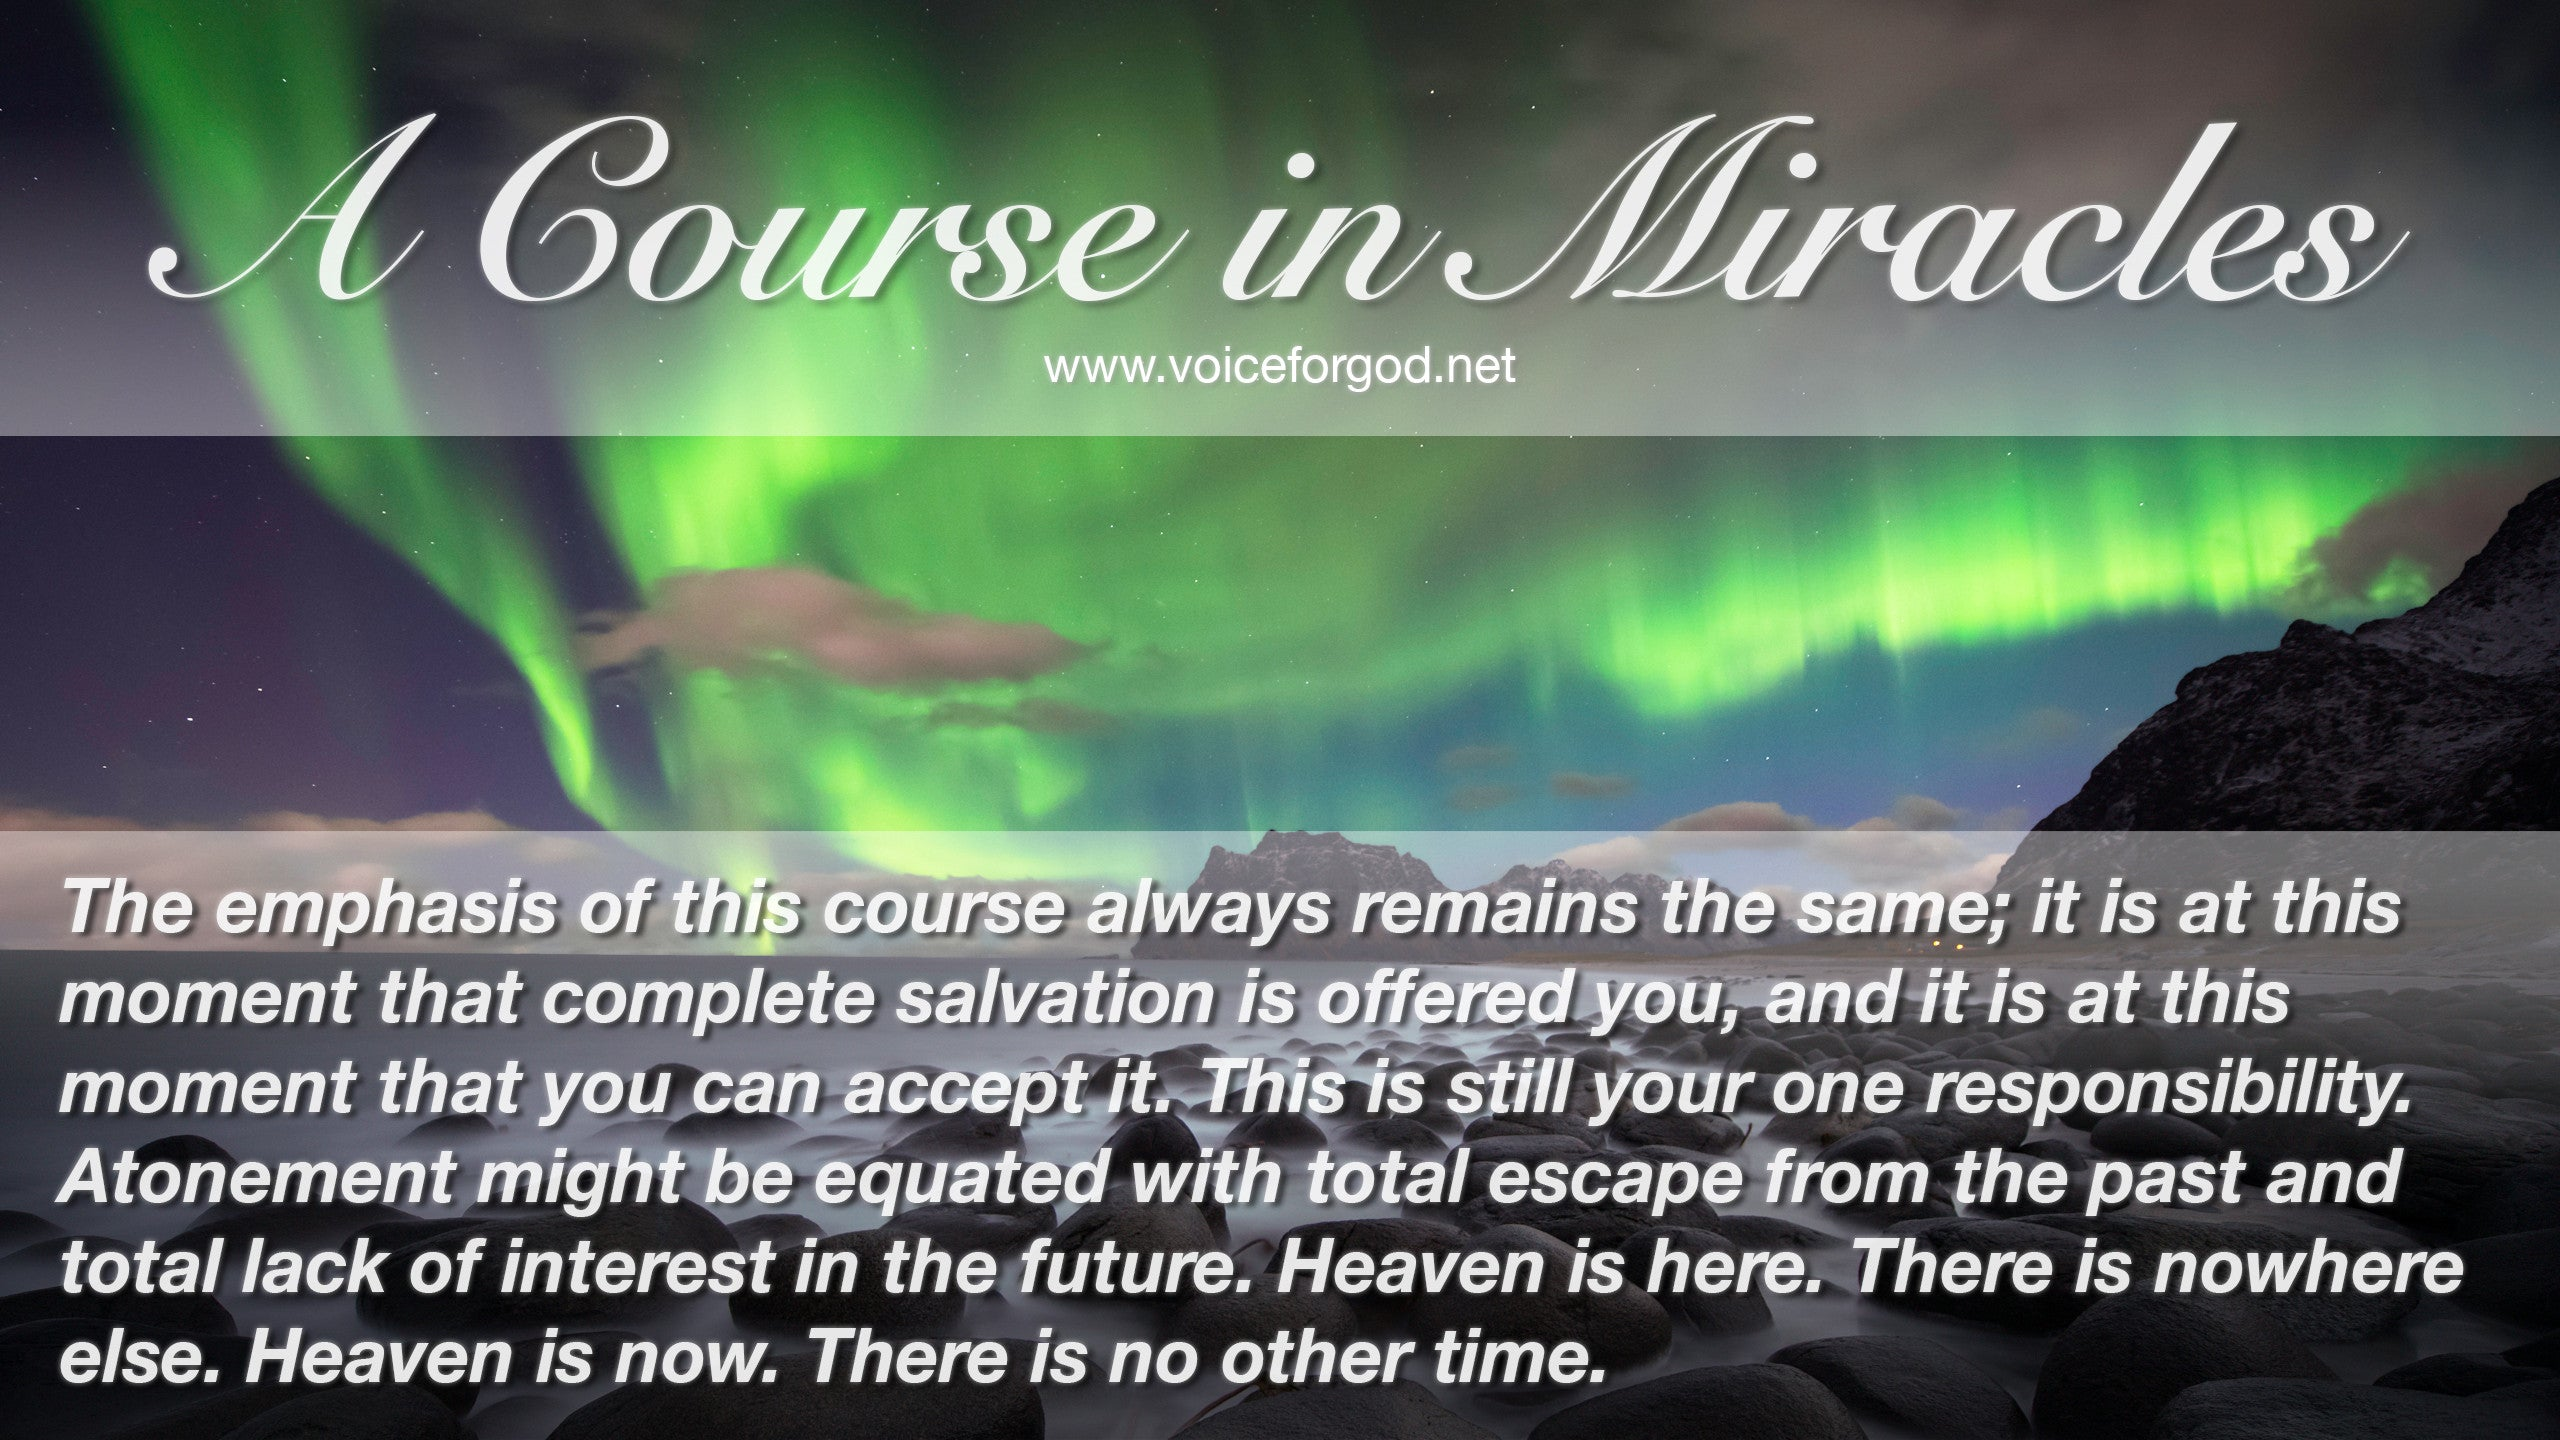 ACIM Quote 1015 A Course in Miracles Quotes